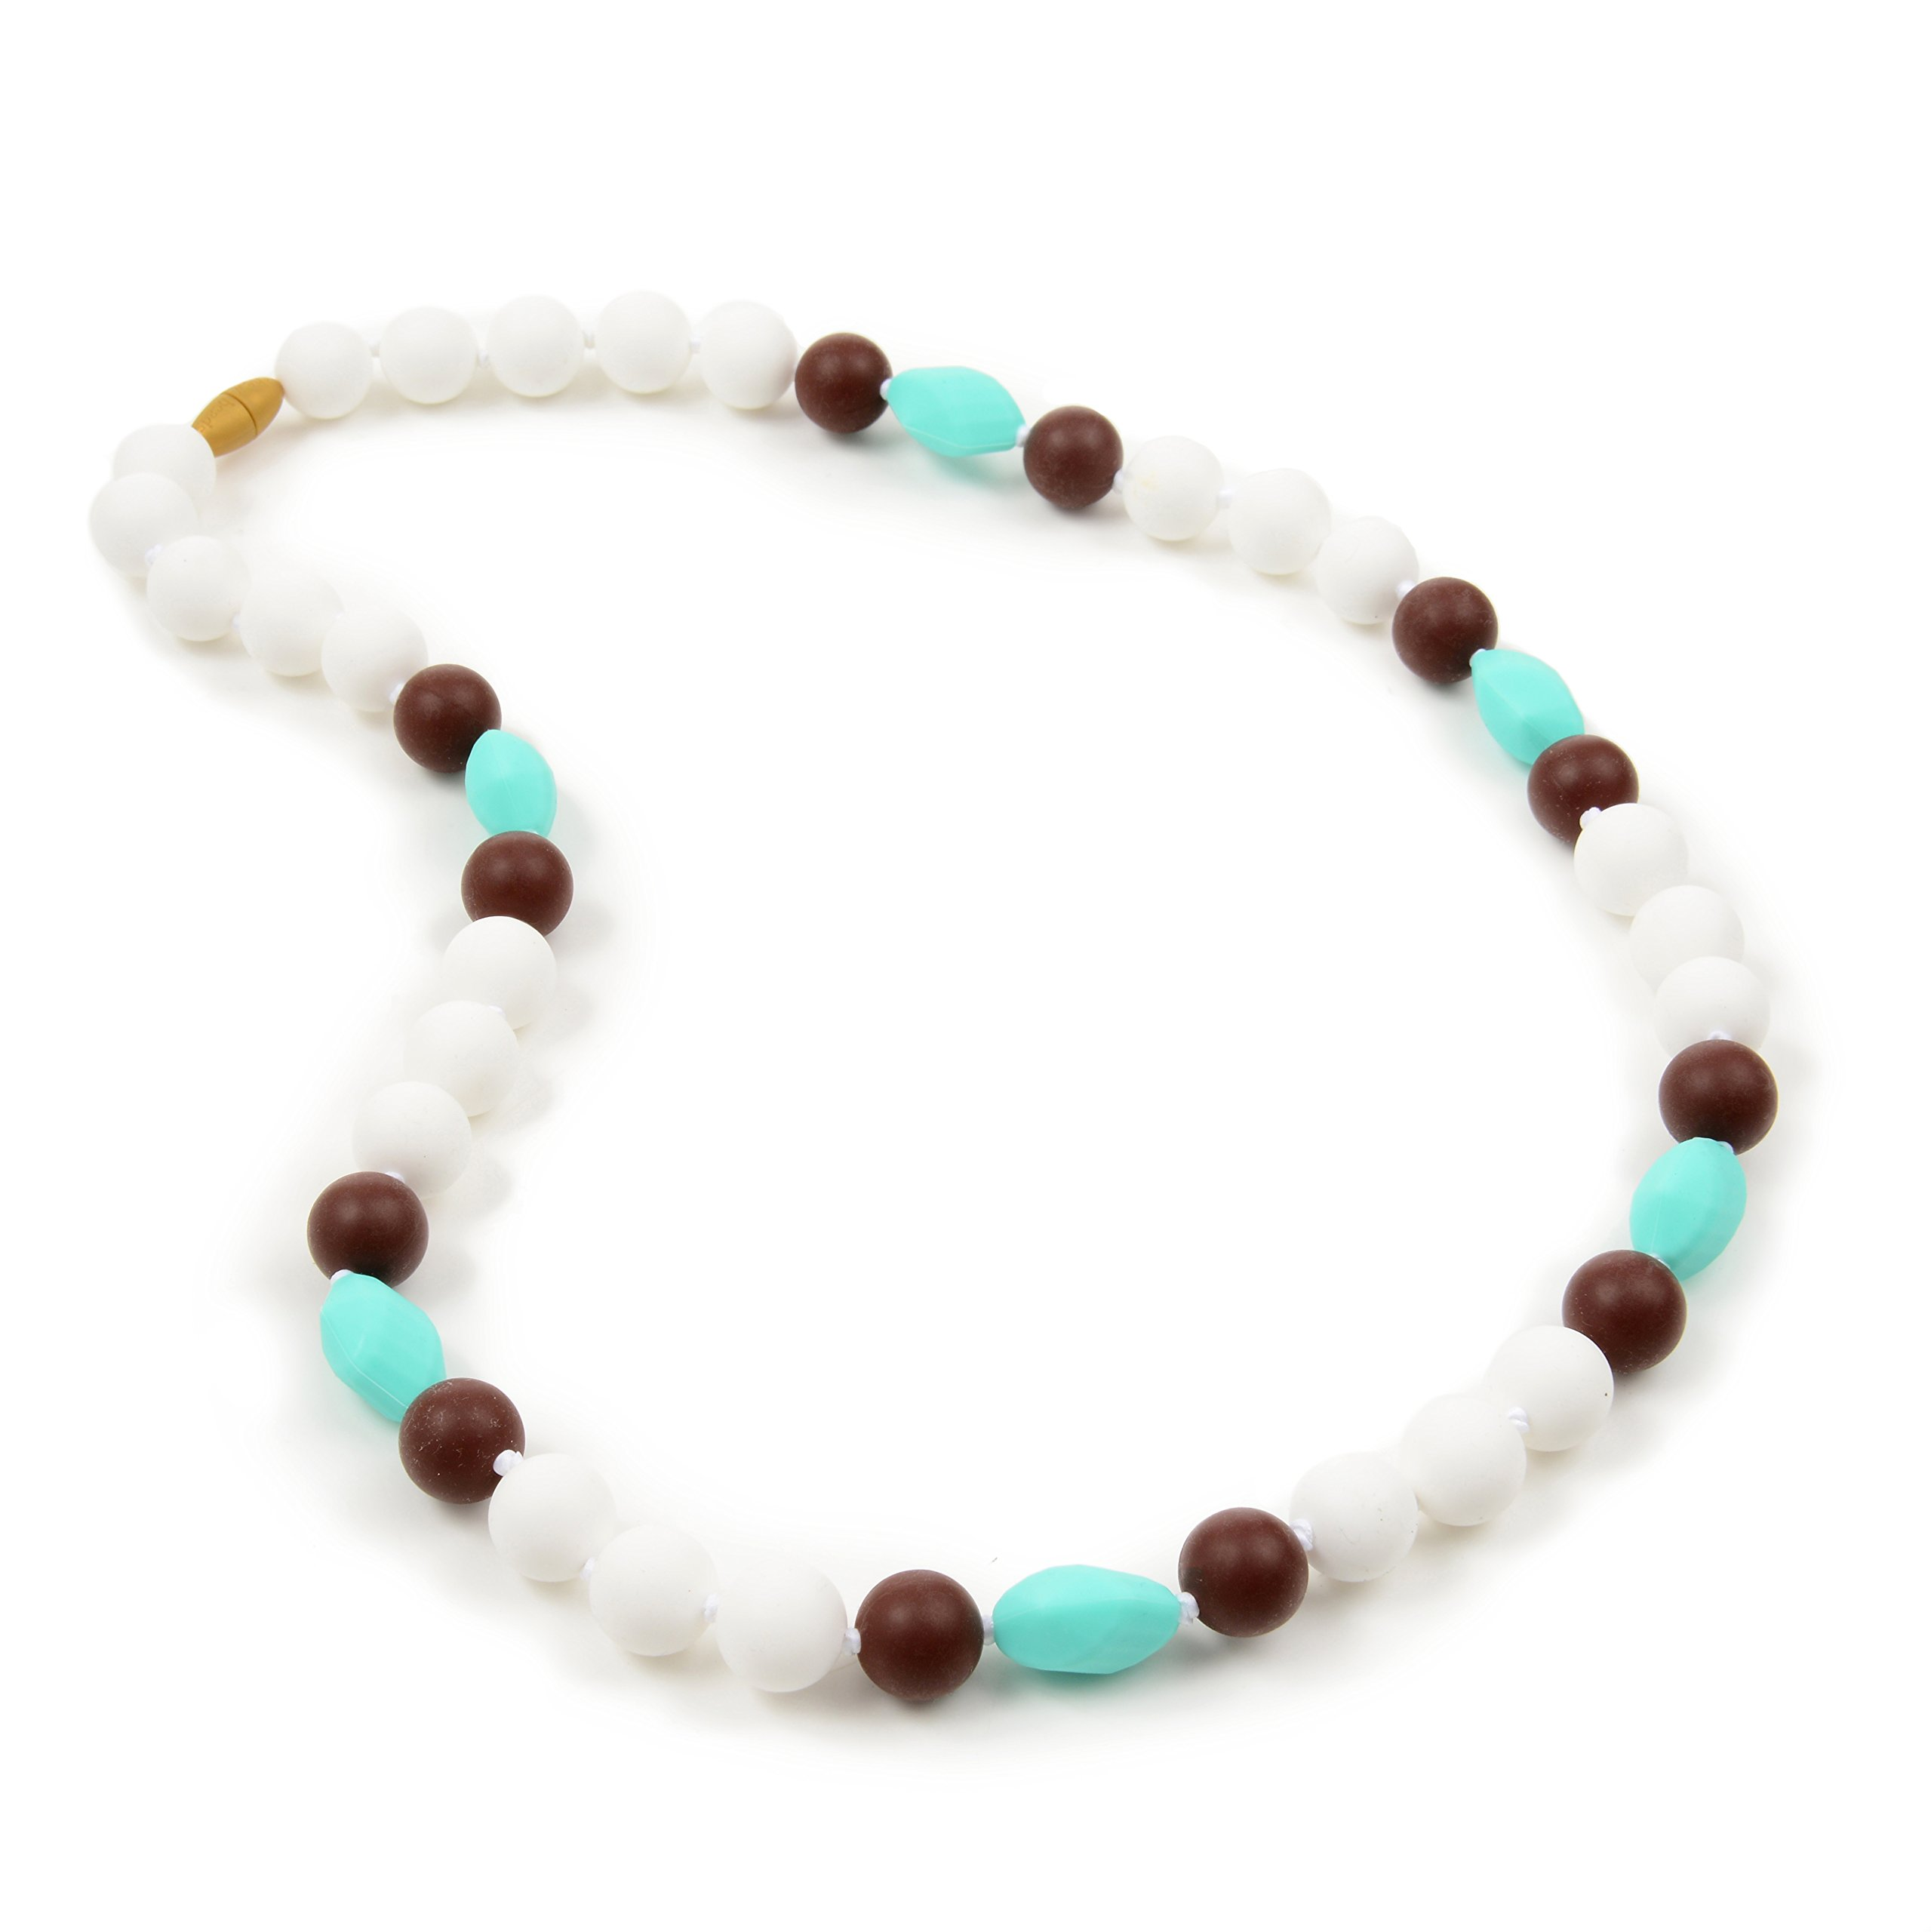 Chewbeads Montauk Teething Necklace - Simply White